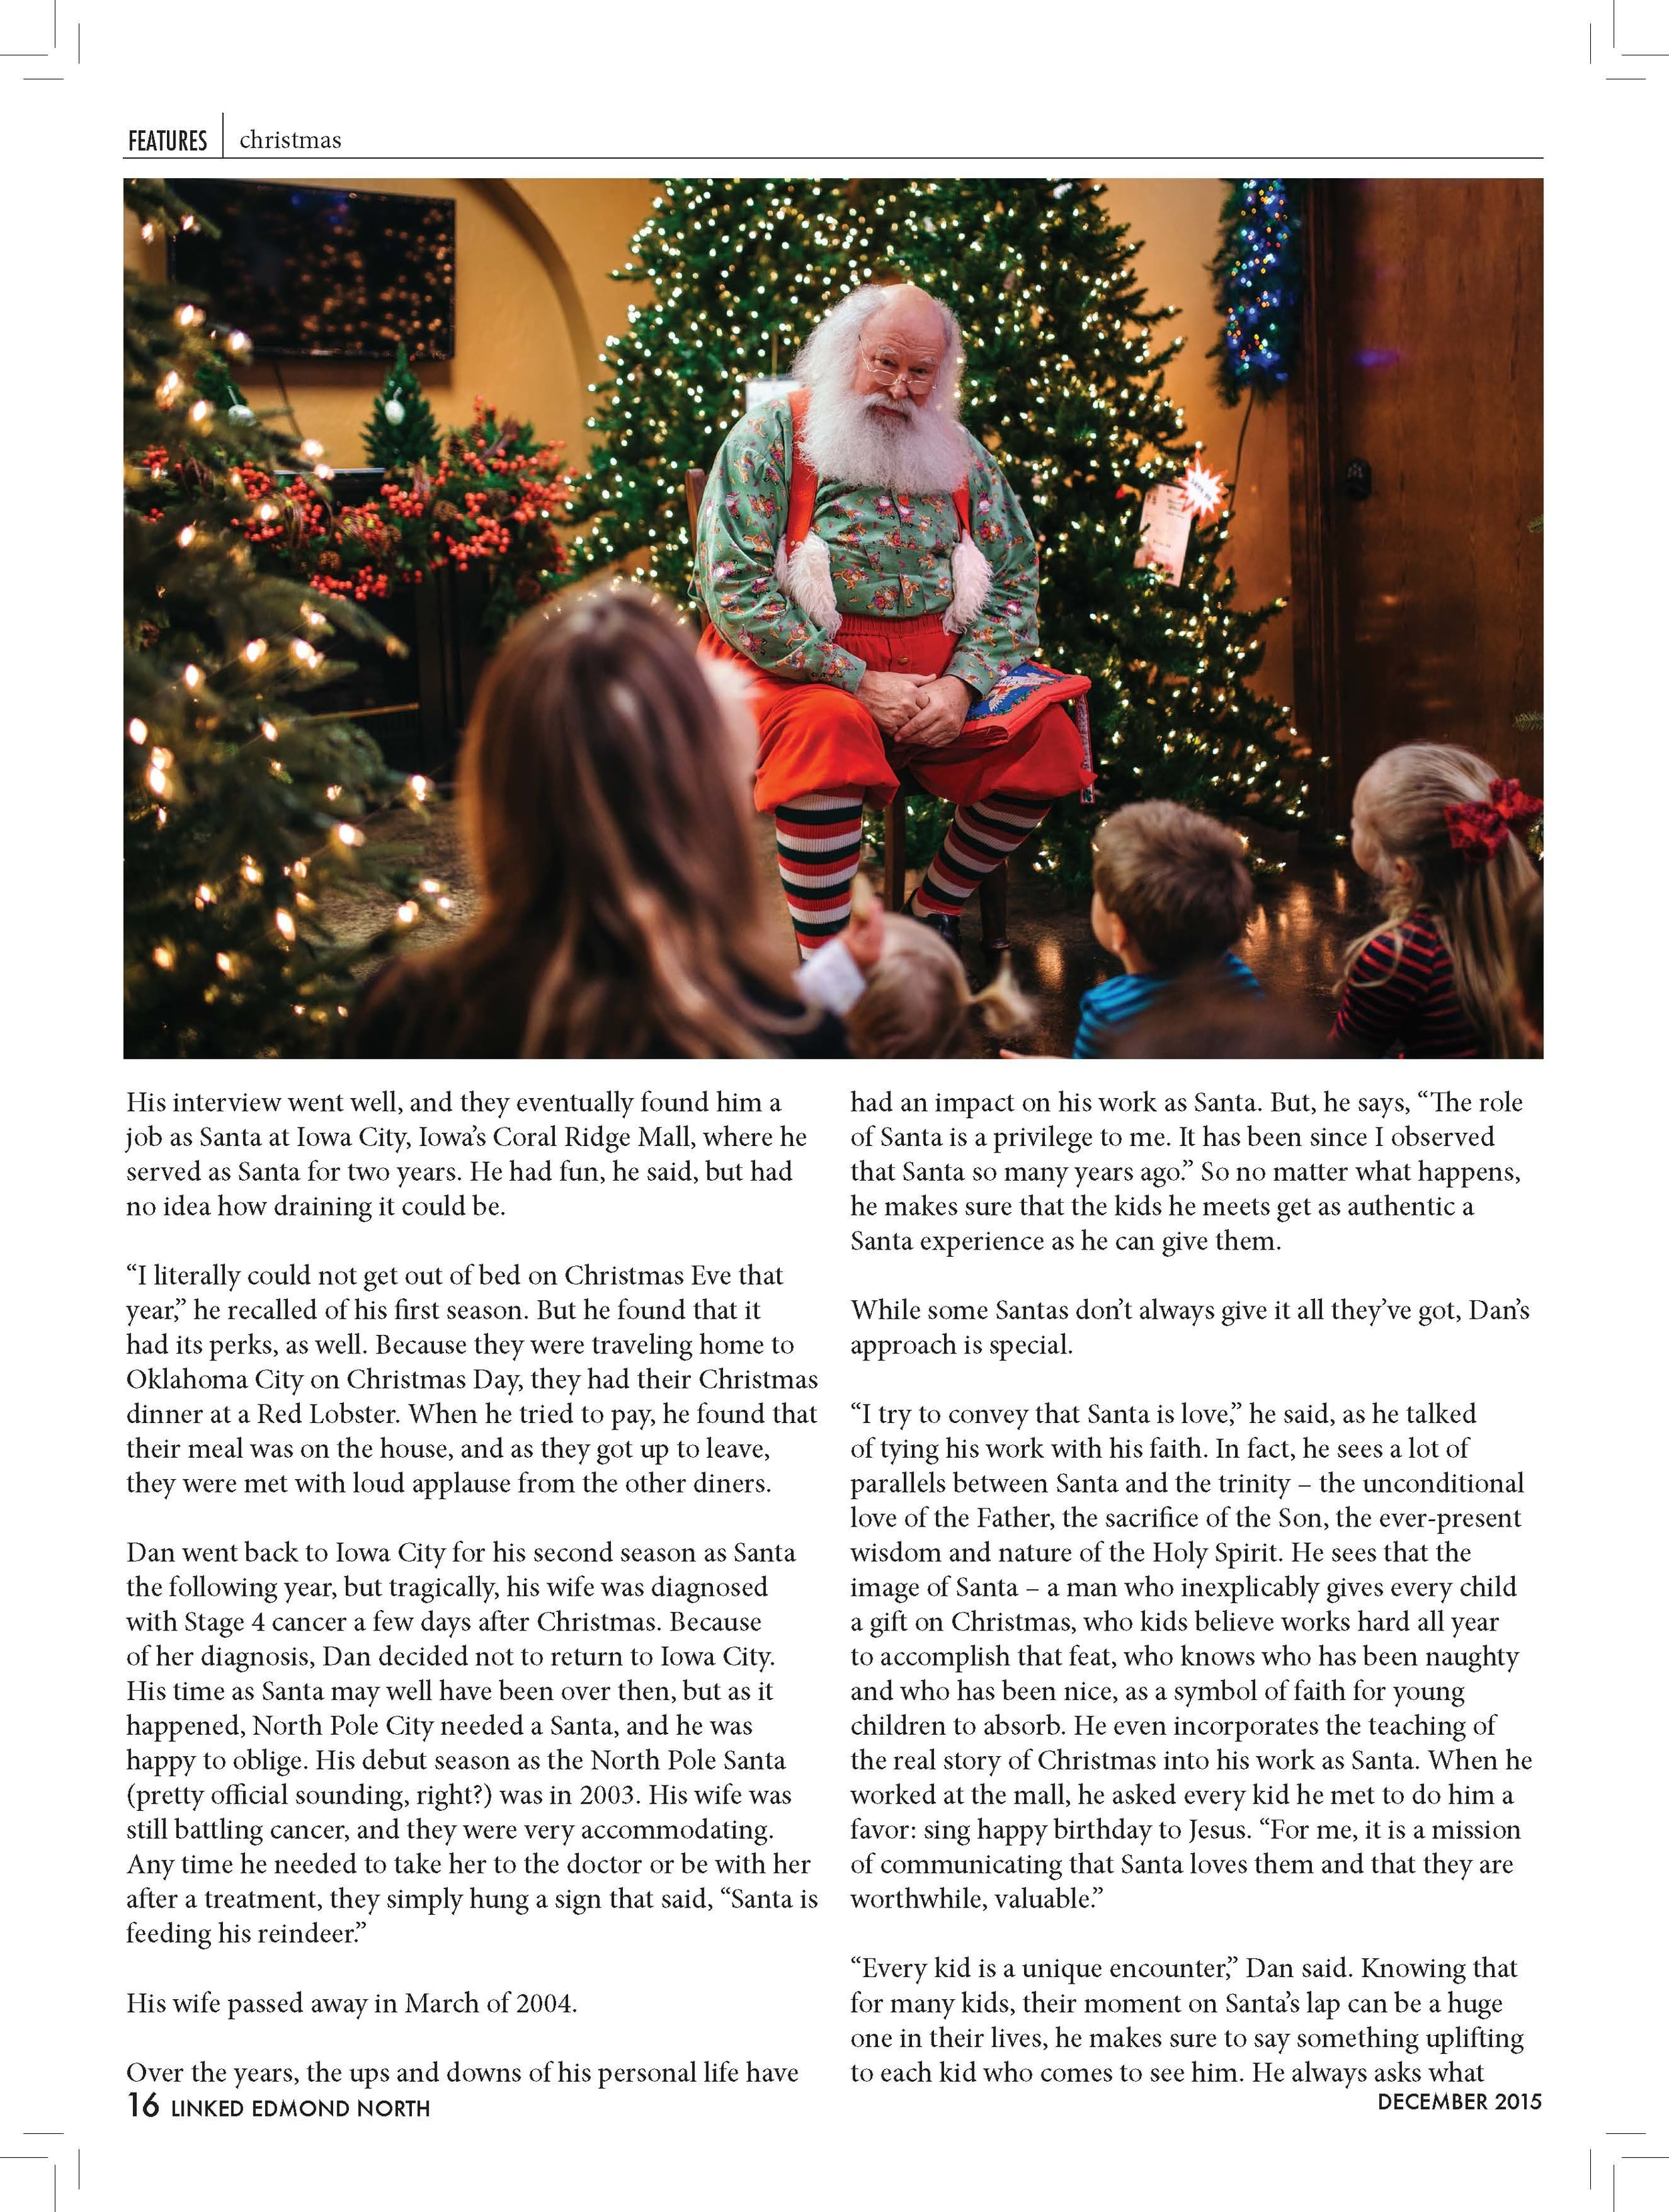 "their name is and how old they are, but when time permits,  he loves to try to get to know them. And he lets them ask  him questions, as well. ""I try to keep it light and affirming.""  One thing parents may not like about Dan's approach is that  he doesn't believe in the naughty list. He makes sure to tell  every kid that they made the ""Nice List"" again this year. But  that doesn't mean he doesn't run into mischievous children.  He recalled a little girl who asked him for a big, scary snake.  ""Where are you going to keep it?"" he asked, to which she  replied, ""in my sister's bed!""  Does he encounter Santa skeptics? Of course! He laughed as  he told us of a time recently when he visited an elementary  school. As the kids were clamoring to meet him, he  overheard an older student say ""don't buy into it, it's a lie!""  ""You can't win them all over,"" he said.  But his spirit of service doesn't end when Christmas is over.  He lives in one of the poorer zip codes in Oklahoma City,  and does so intentionally. He believes in creating a strong  sense of community, and that that being a good neighbor is  even more important in neighborhoods like the one he lives  in. Most people on the block call him Santa, both because  many of them don't know his real name, and because they  know he is the kind of person that will help them when  they're in need. ""Being a good neighbor is all I'm trying to  do here,"" he humbly said.  One day, he was enjoying the nice weather on his front  porch when a young man walked by. ""Hey Santa, will you  pray for my mother?"" he asked. ""She's in Detroit, and we  think she's going to see her last day pretty soon."" Dan prayed  with the stranger. A few days later, that same young man  walked by again and said, ""I want you to know, my heart  is good. I know she's in heaven because she was a good  woman.""  We plied him, and Dan told us several other moving stories  of his interactions with his neighbors. He truly is the  embodiment of Santa, but year 'round, and for people who  need it the most.  Talking to Dan it is hard not to believe, if not just for his  appearance. If Santa is real, he is most definitely a good  neighbor, a caring soul, someone to pray with and someone  who makes each child know how special and important  they are, even if he's the only one saying so. He would go  into the bad neighborhoods and love the undesirables. And,  on his off days he would probably rock a sweet pair of Toms.  No one knows if Dan is the real Santa, or just one of his  highest ranking associates, but for now, you can find him at  North Pole City, showing children that they are each special,  and that Santa loves them.  Written by Meg McElhaney & Forrest Bennett  Photographed by Jonathan Burkhart"